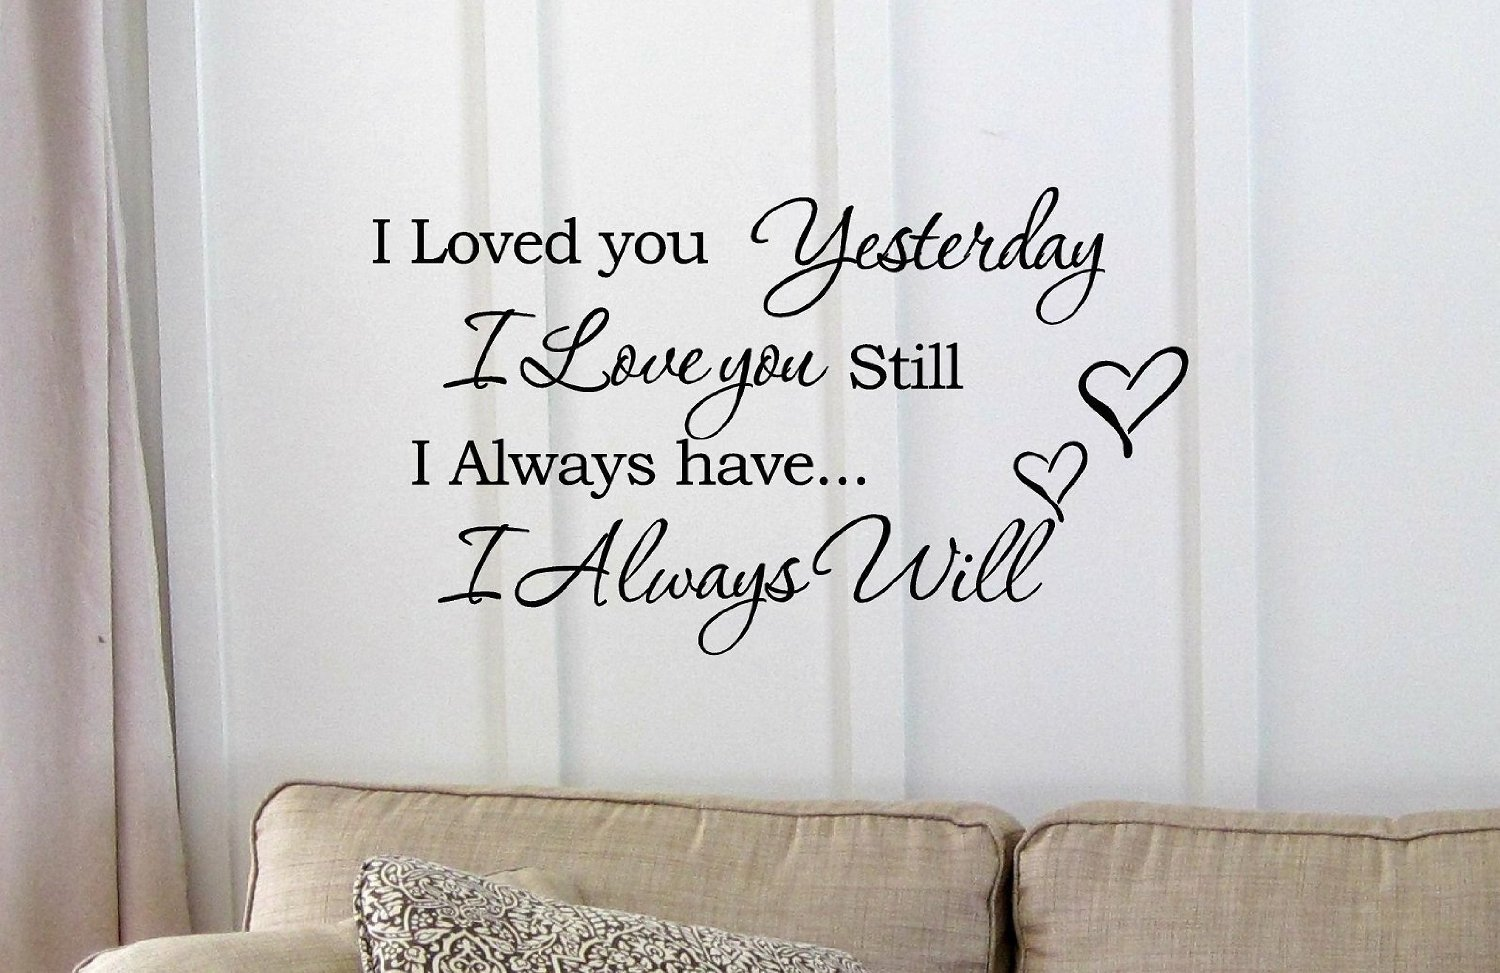 Amazon.com: I Loved You Yesterday I Love You Still I Always Have I Always  Will Vinyl Wall Art Inspirational Quotes And Saying Home Decor Decal  Sticker: Home ...